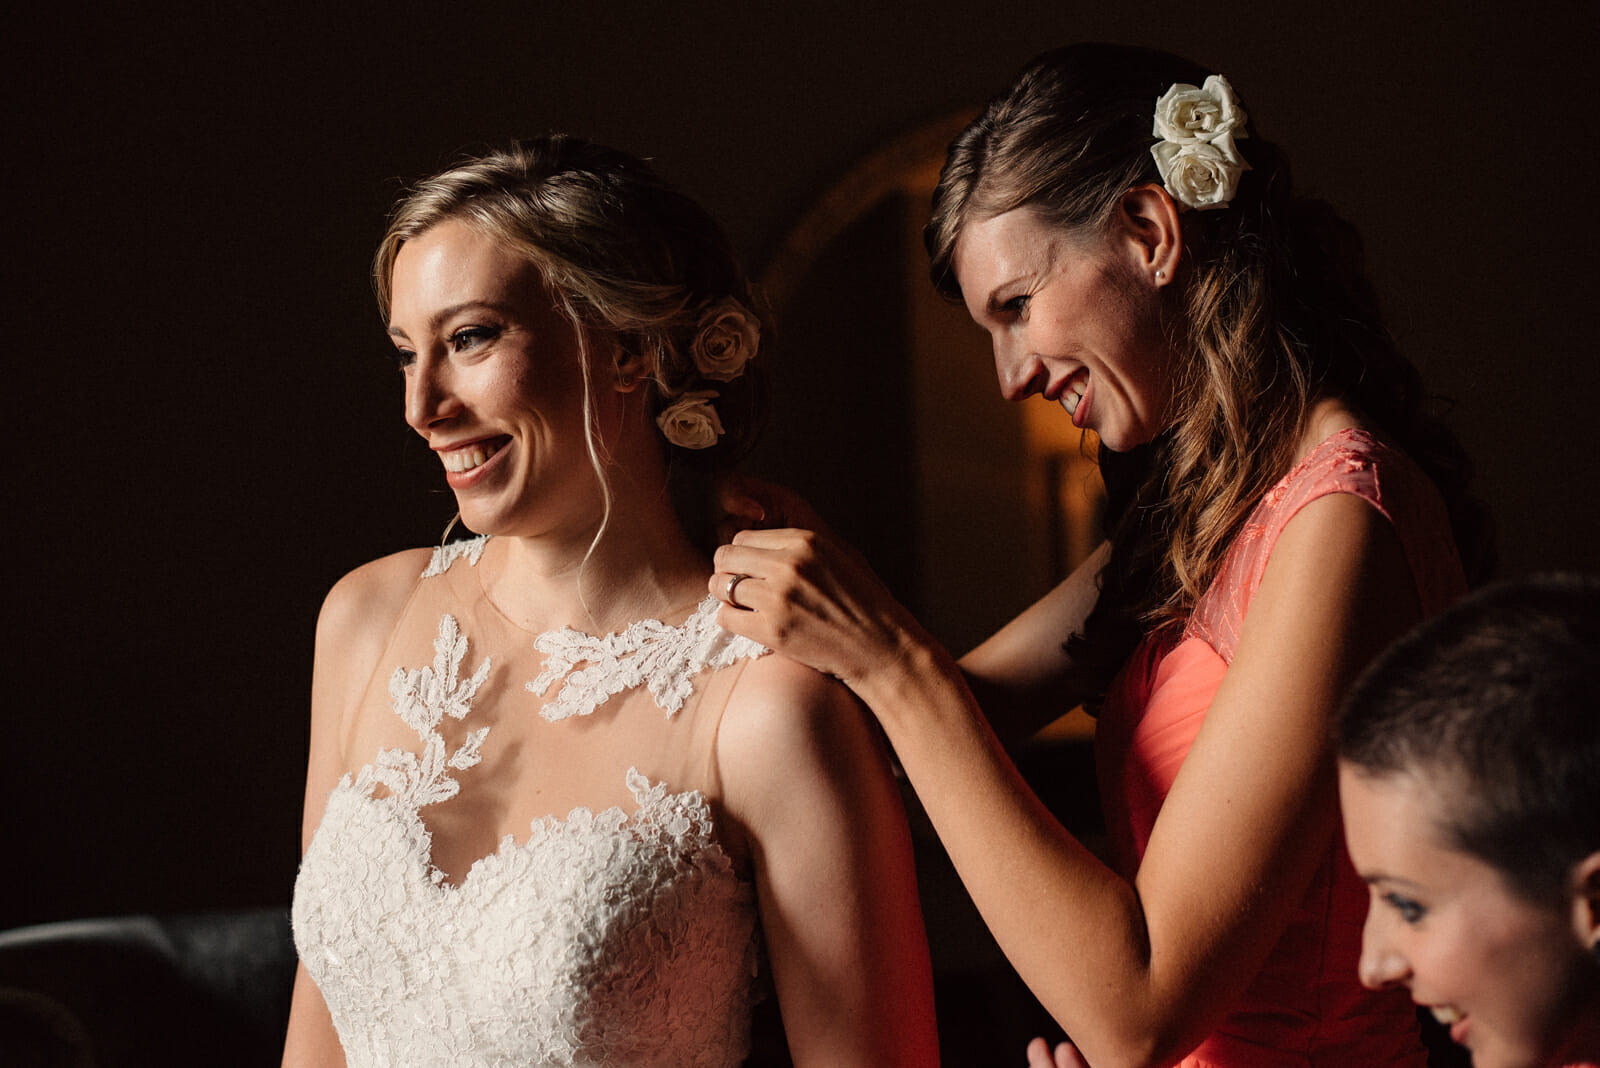 sister helps bride button up her wedding dress